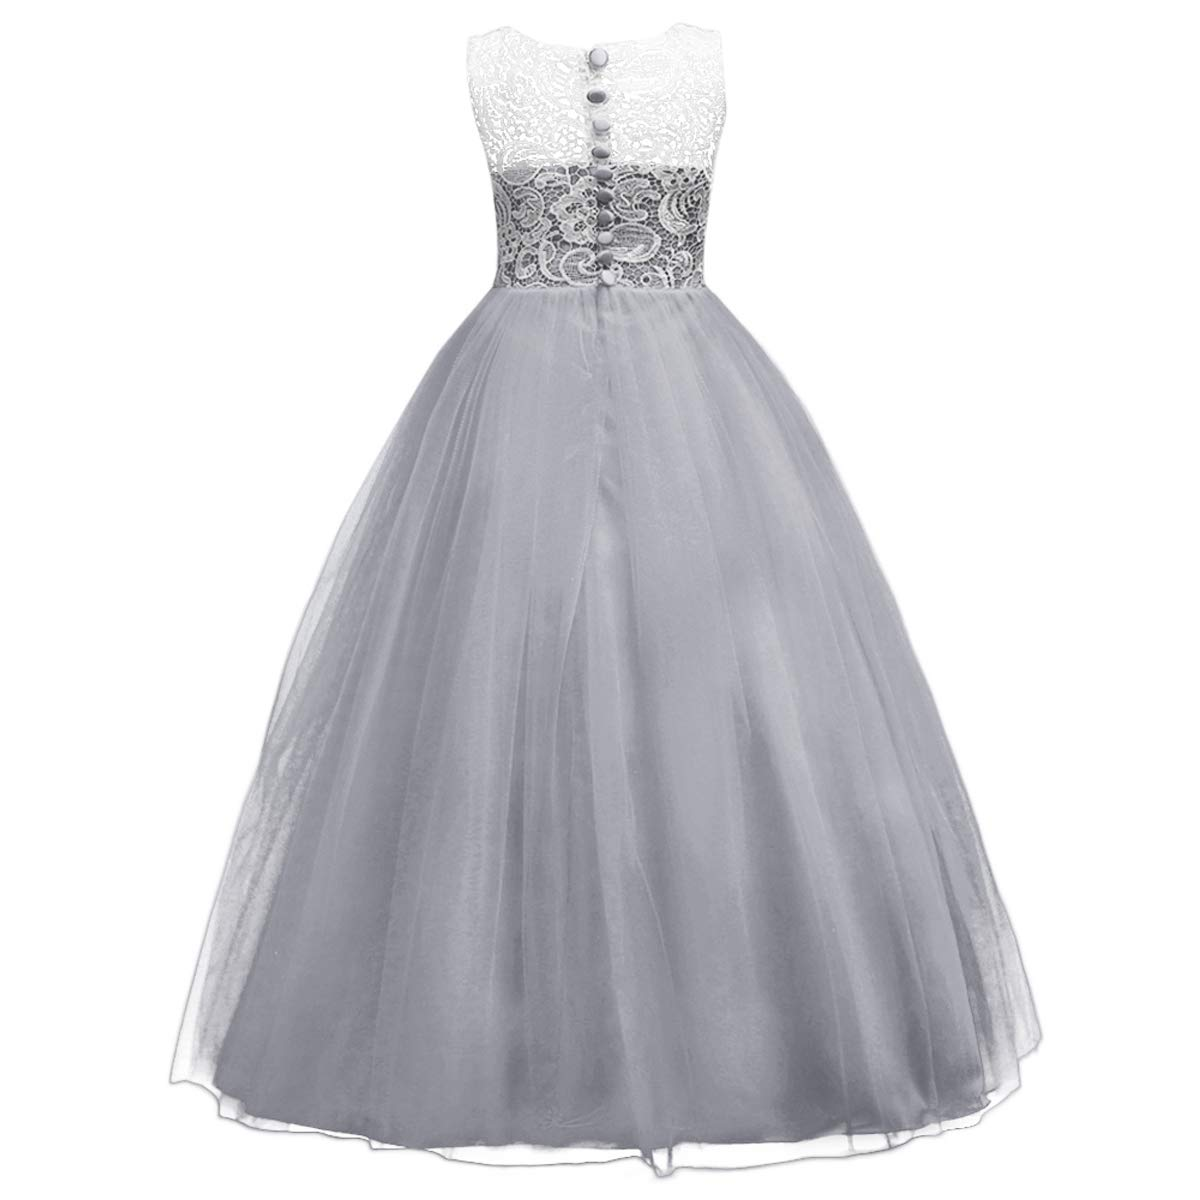 Flower Girls Tulle Lace Dress Communion Pageant Birthday Party Wedding Dress